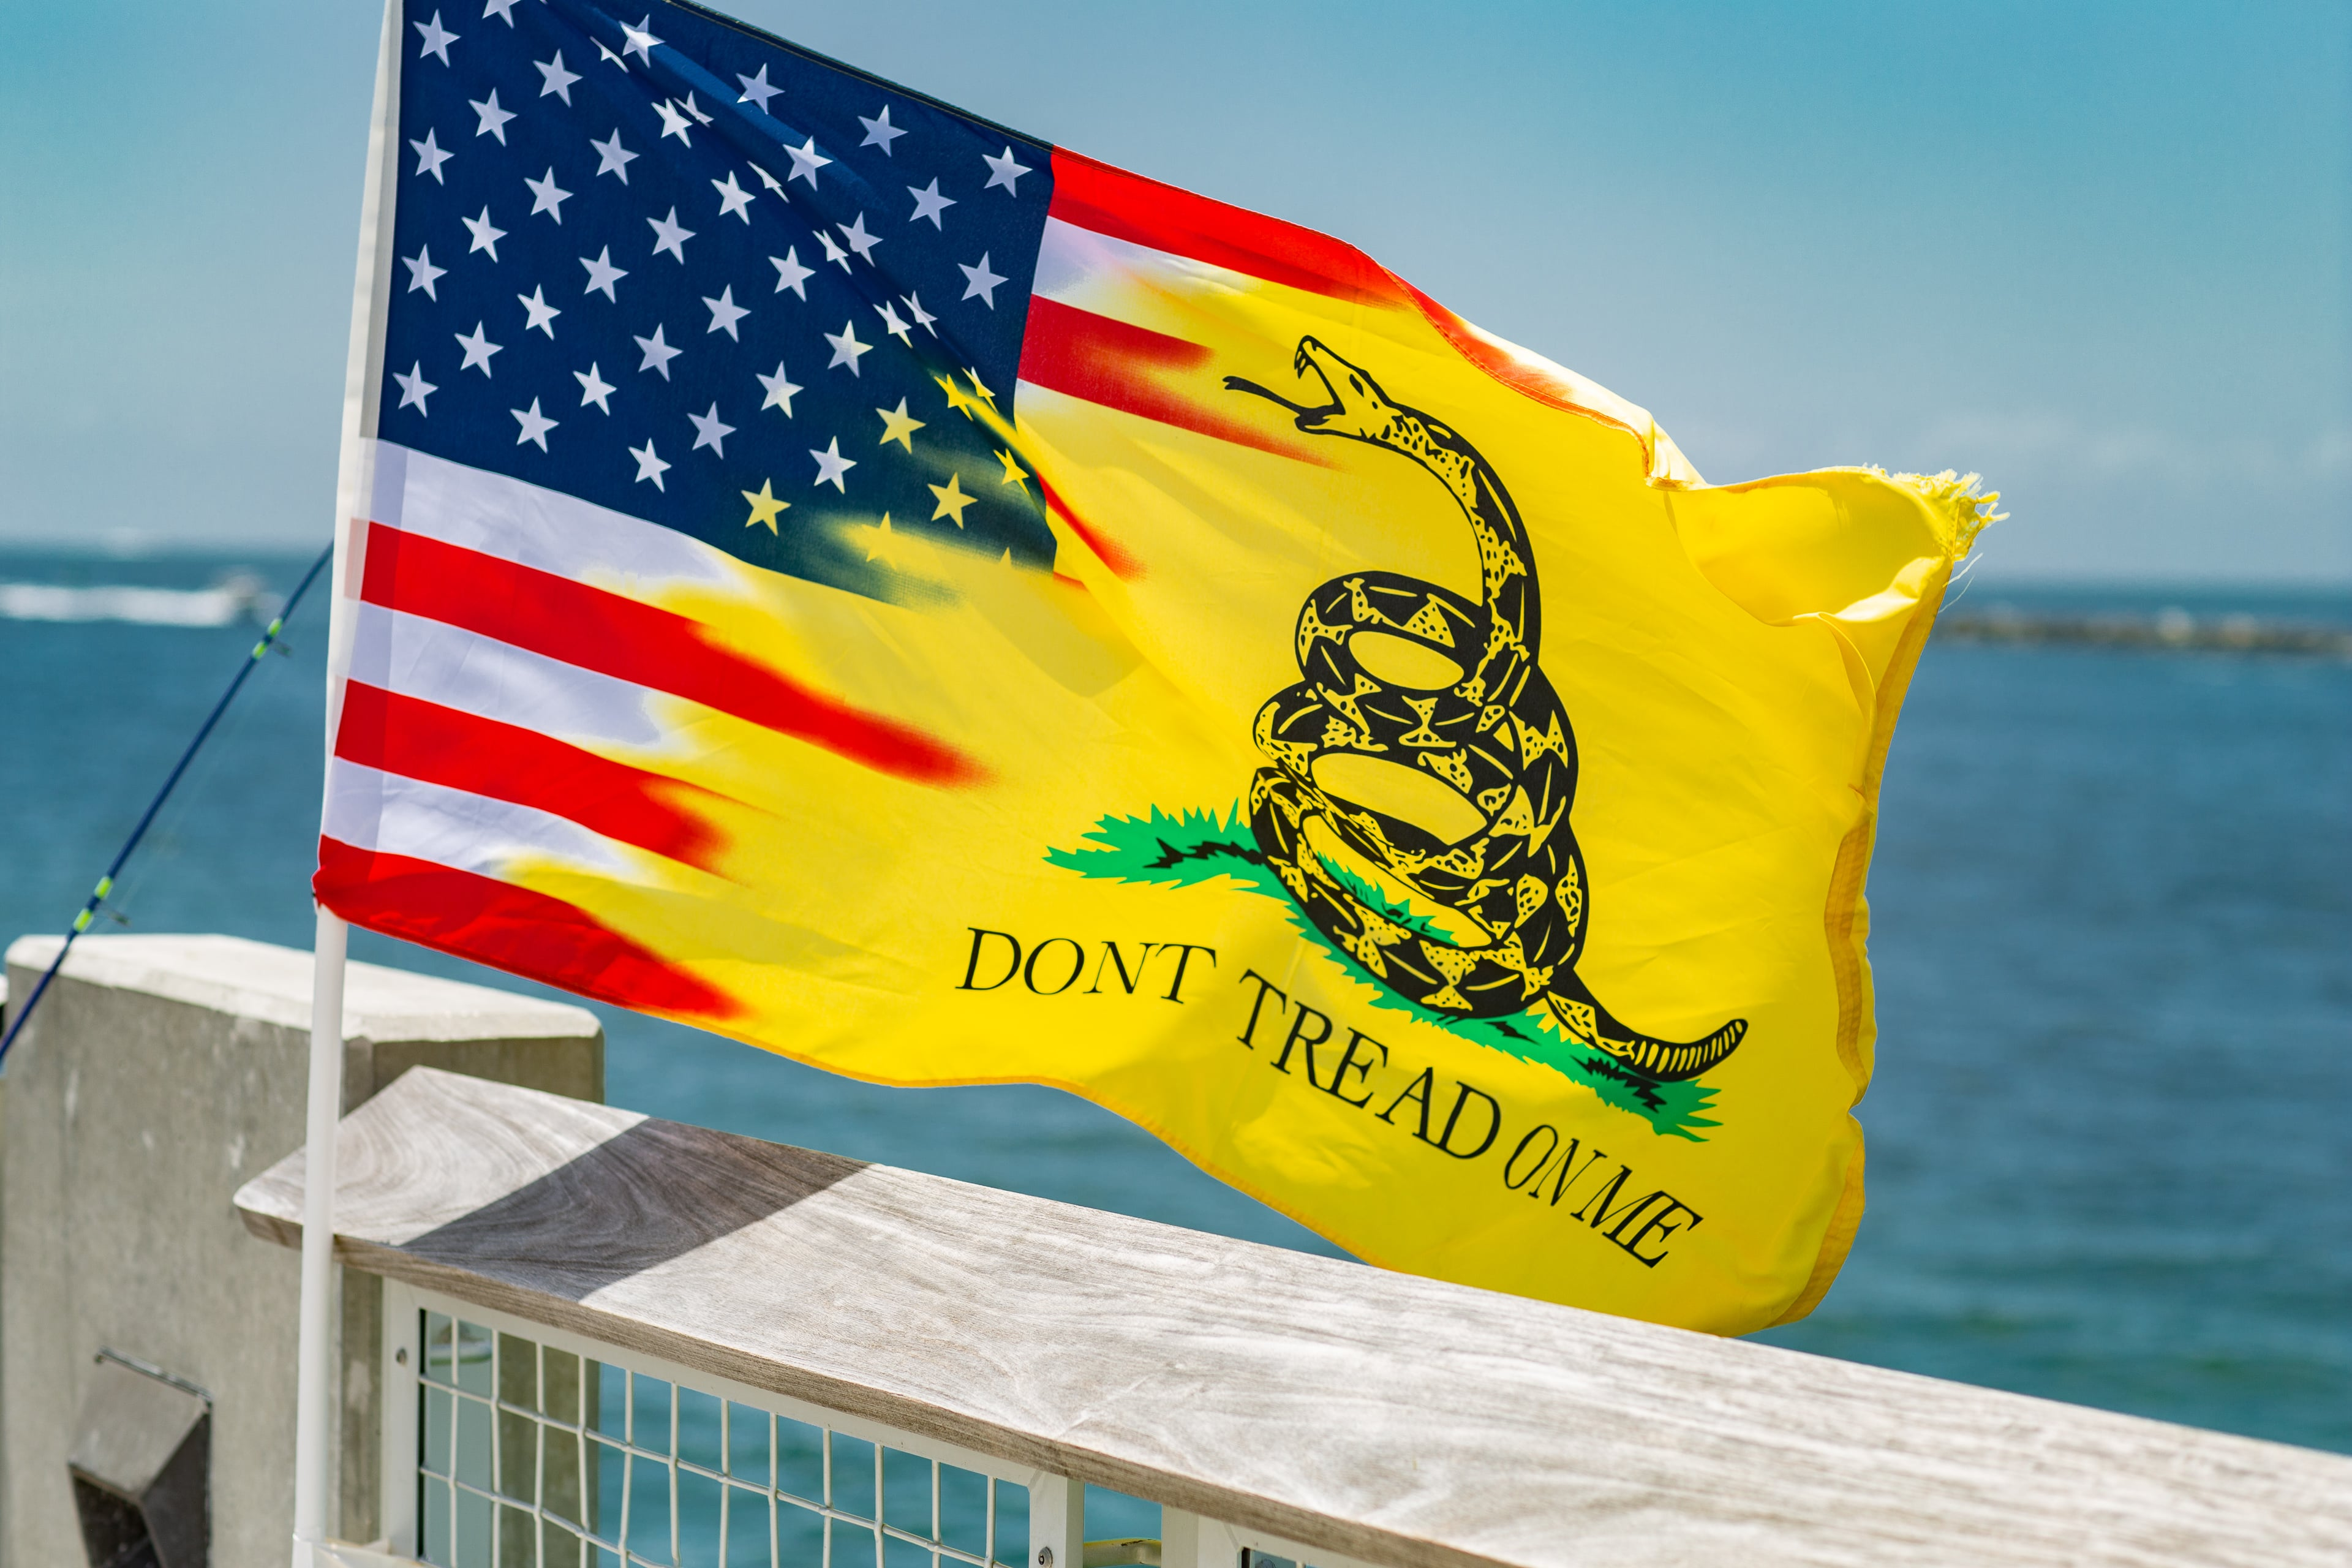 The Gadsden Flag is pretty cool.